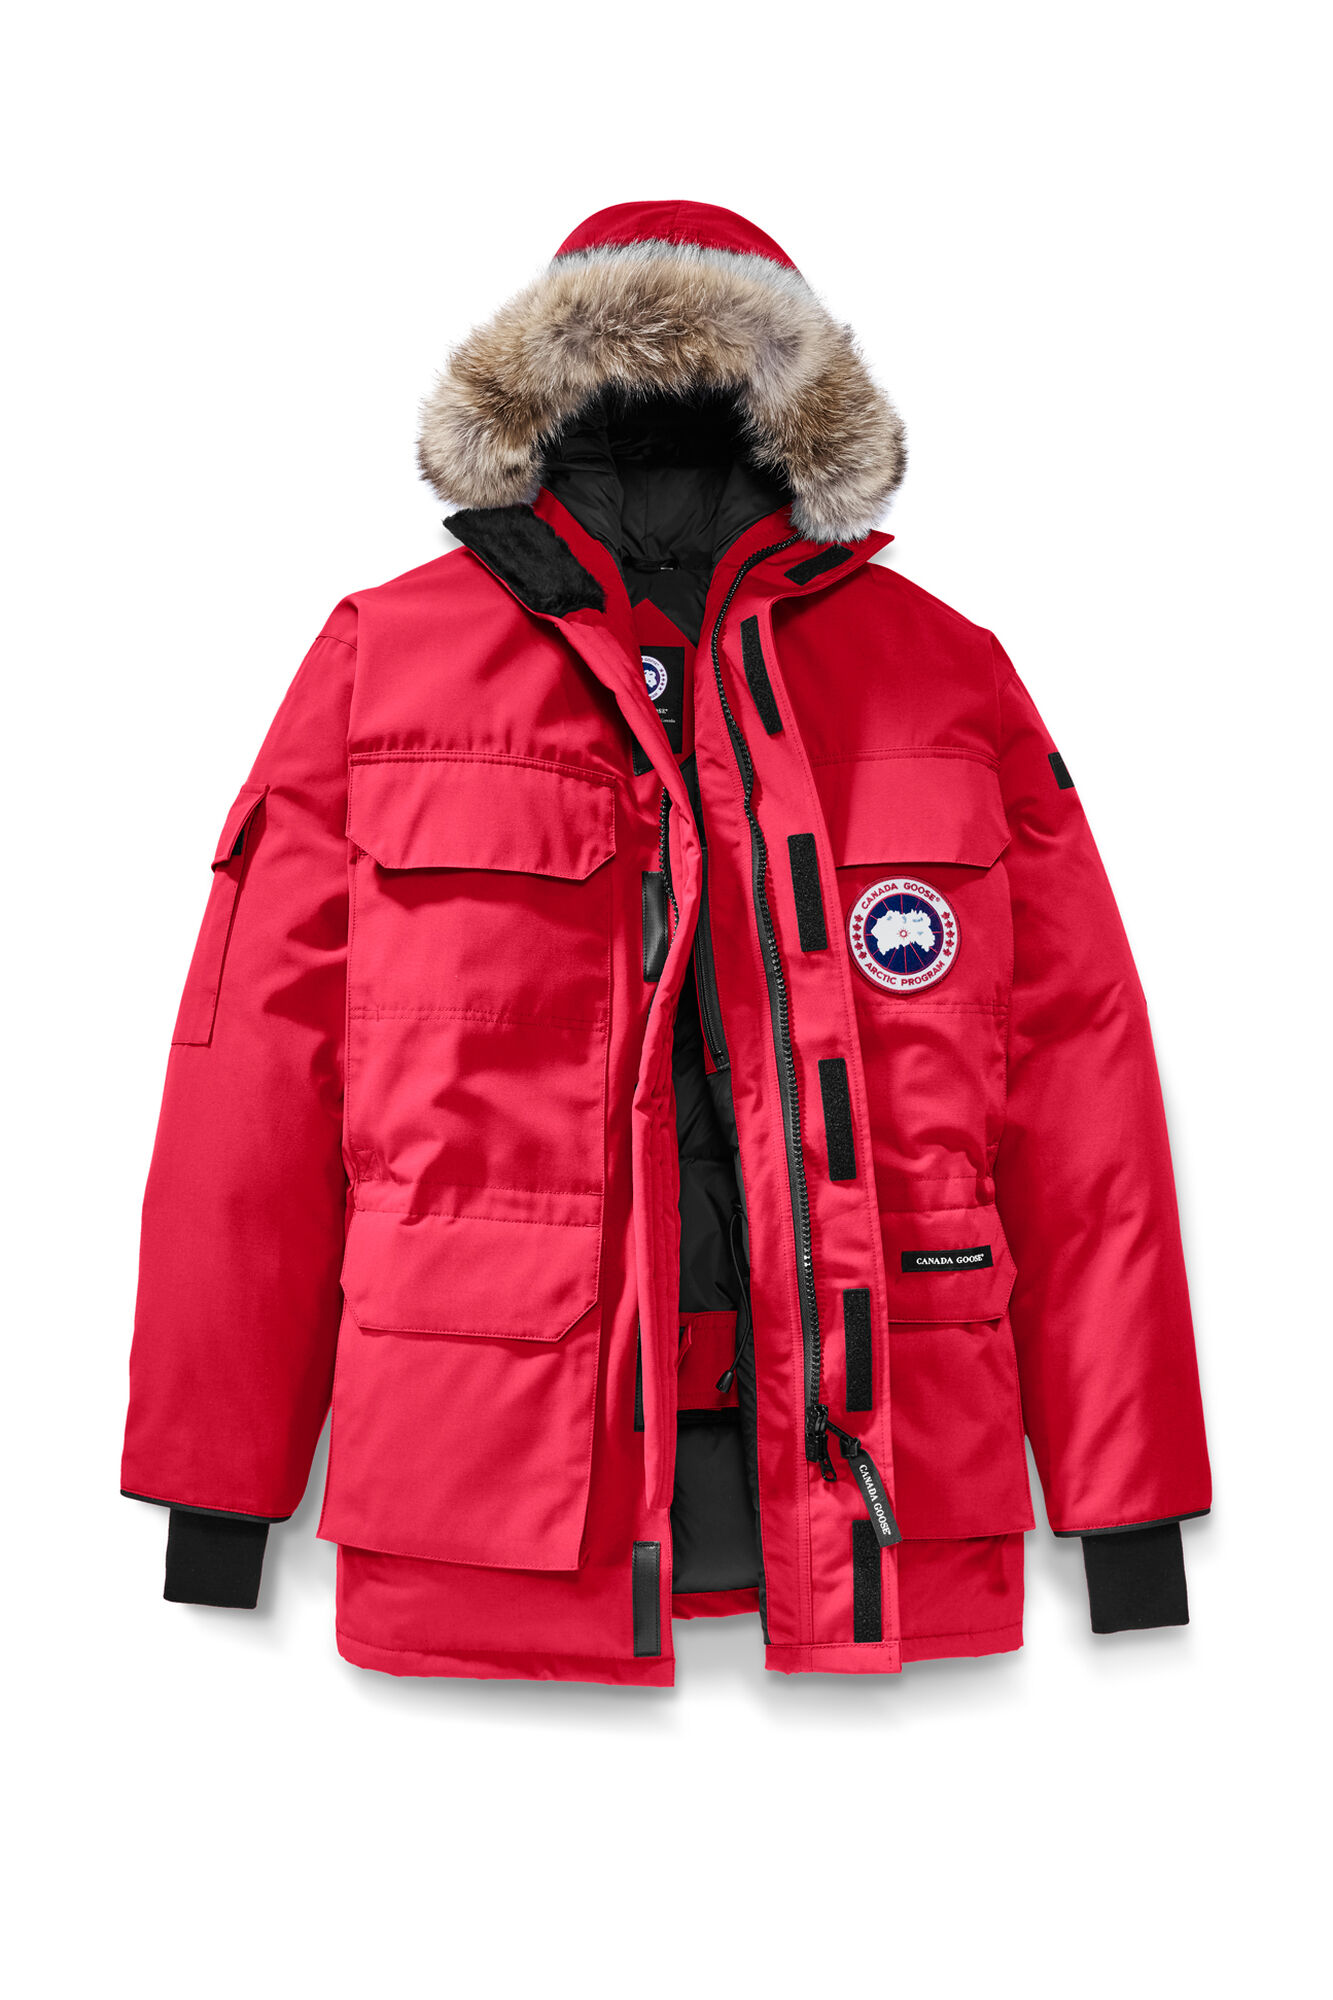 Canada Goose expedition parka outlet discounts - Men's Arctic Program Expedition Parka | Canada Goose?